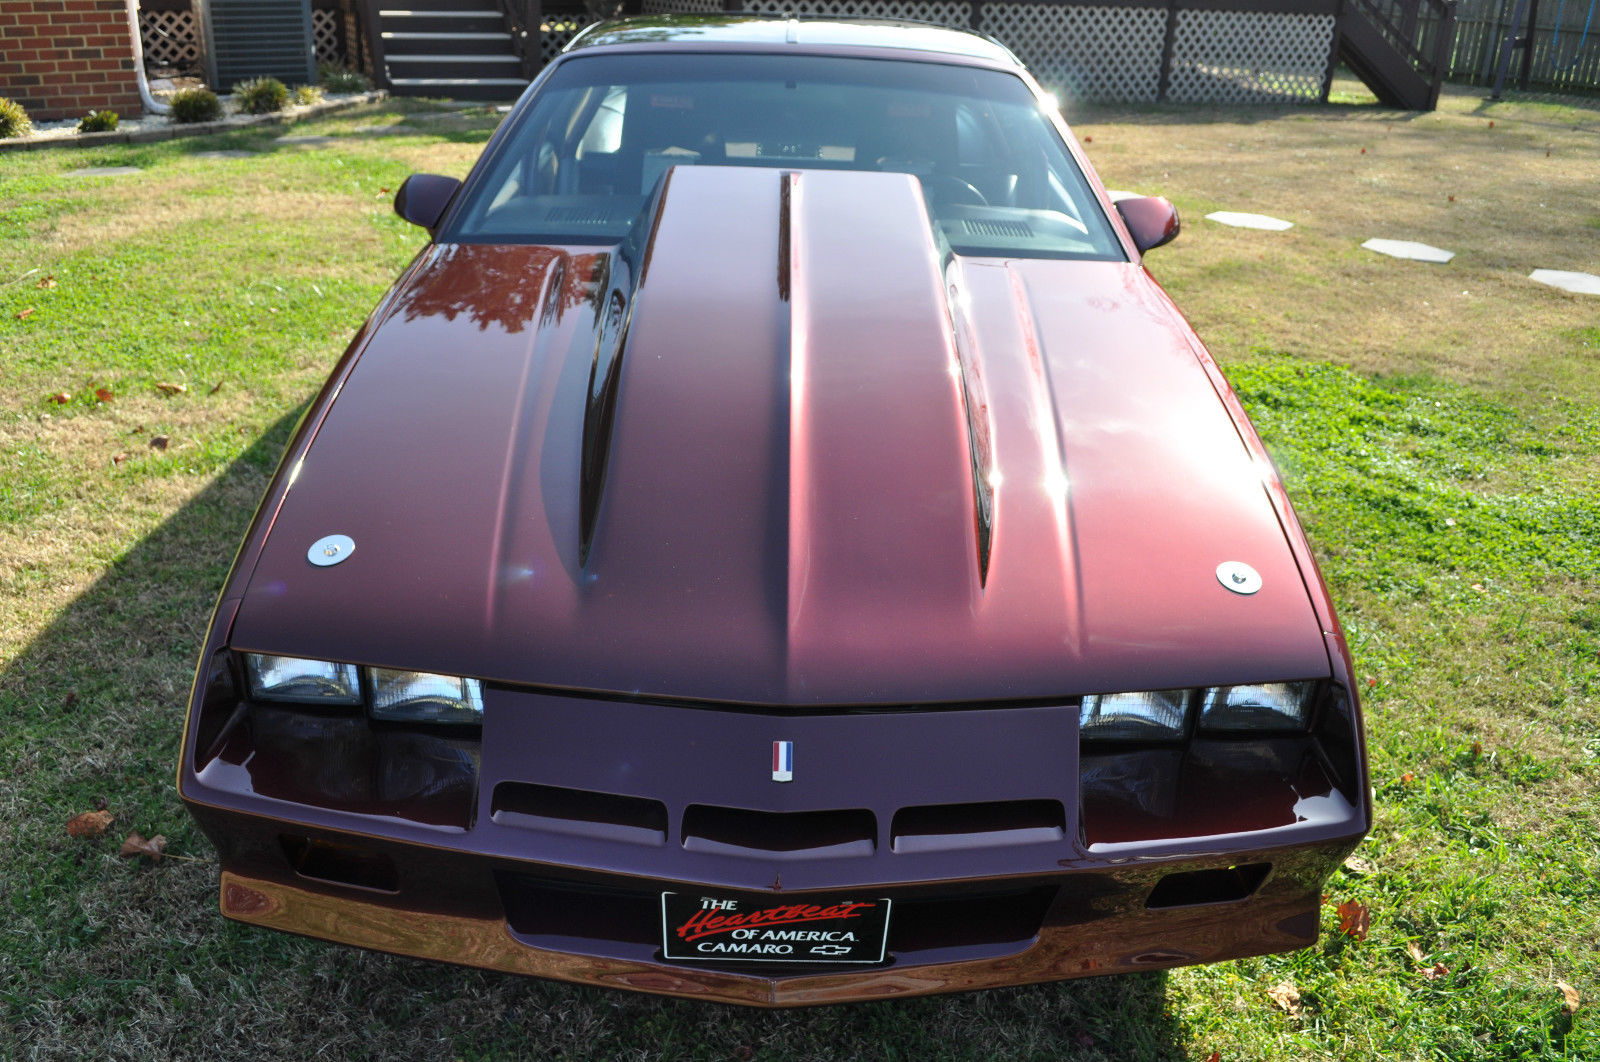 1983 chevrolet camaro pro street real street outlaw race car show car classic. Black Bedroom Furniture Sets. Home Design Ideas